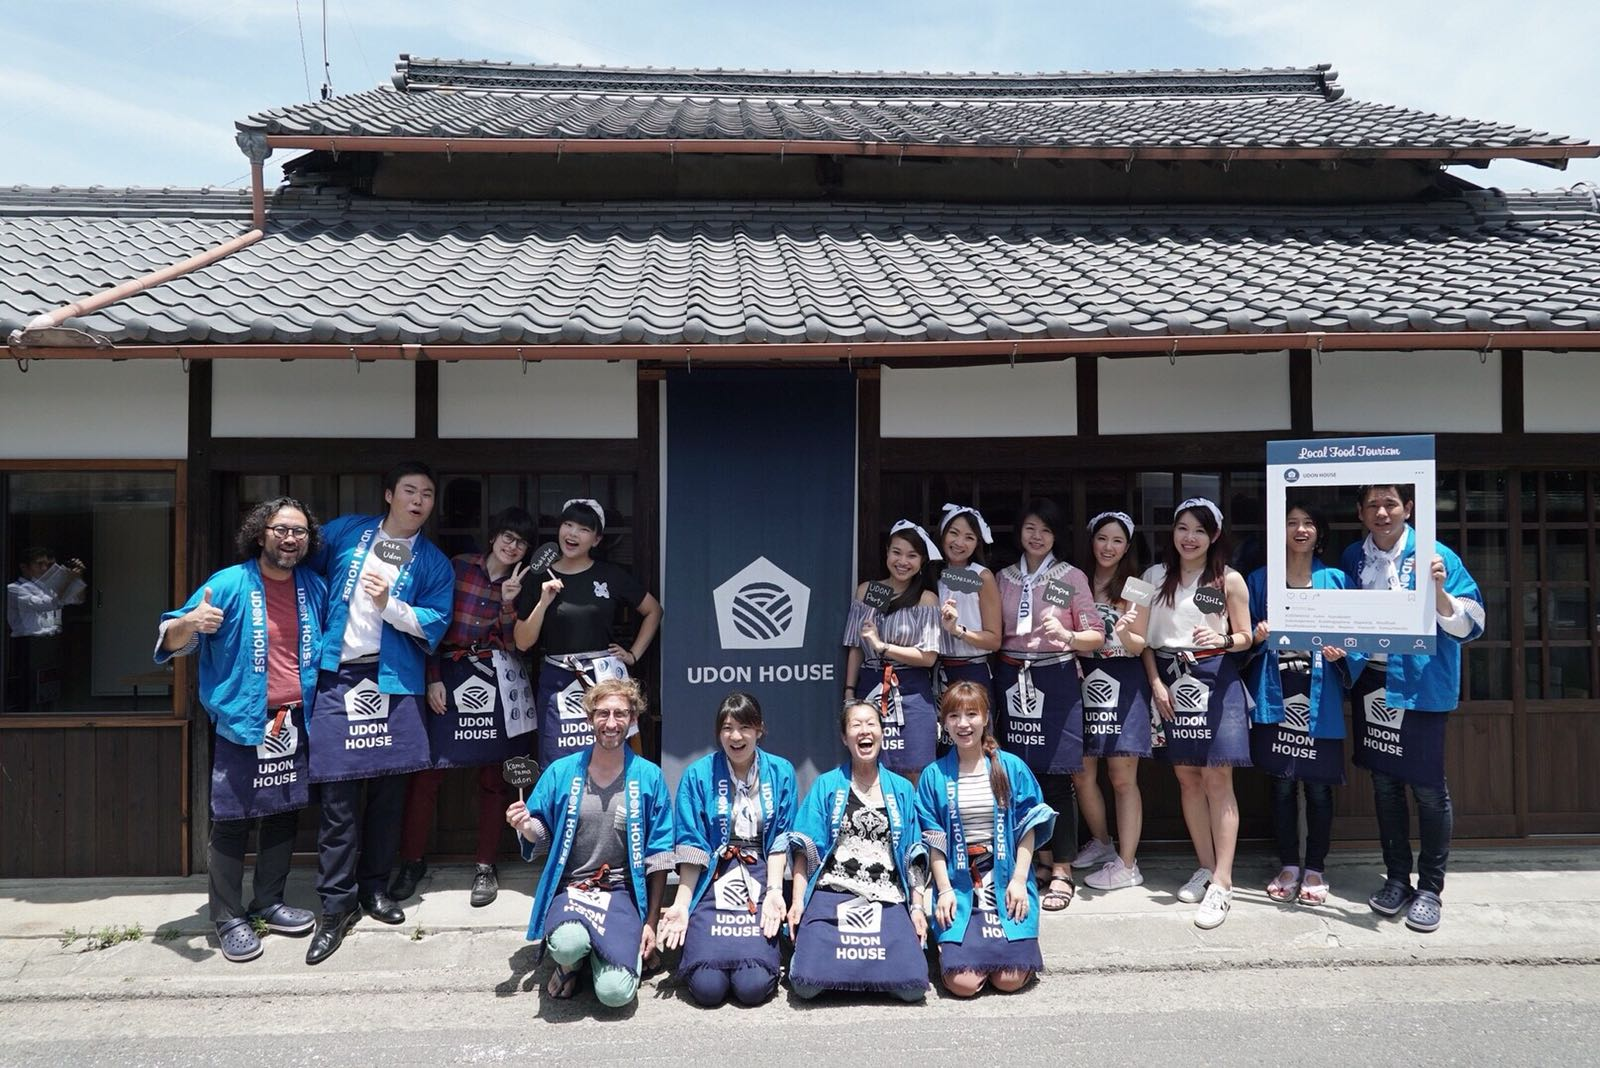 group picture of udon house